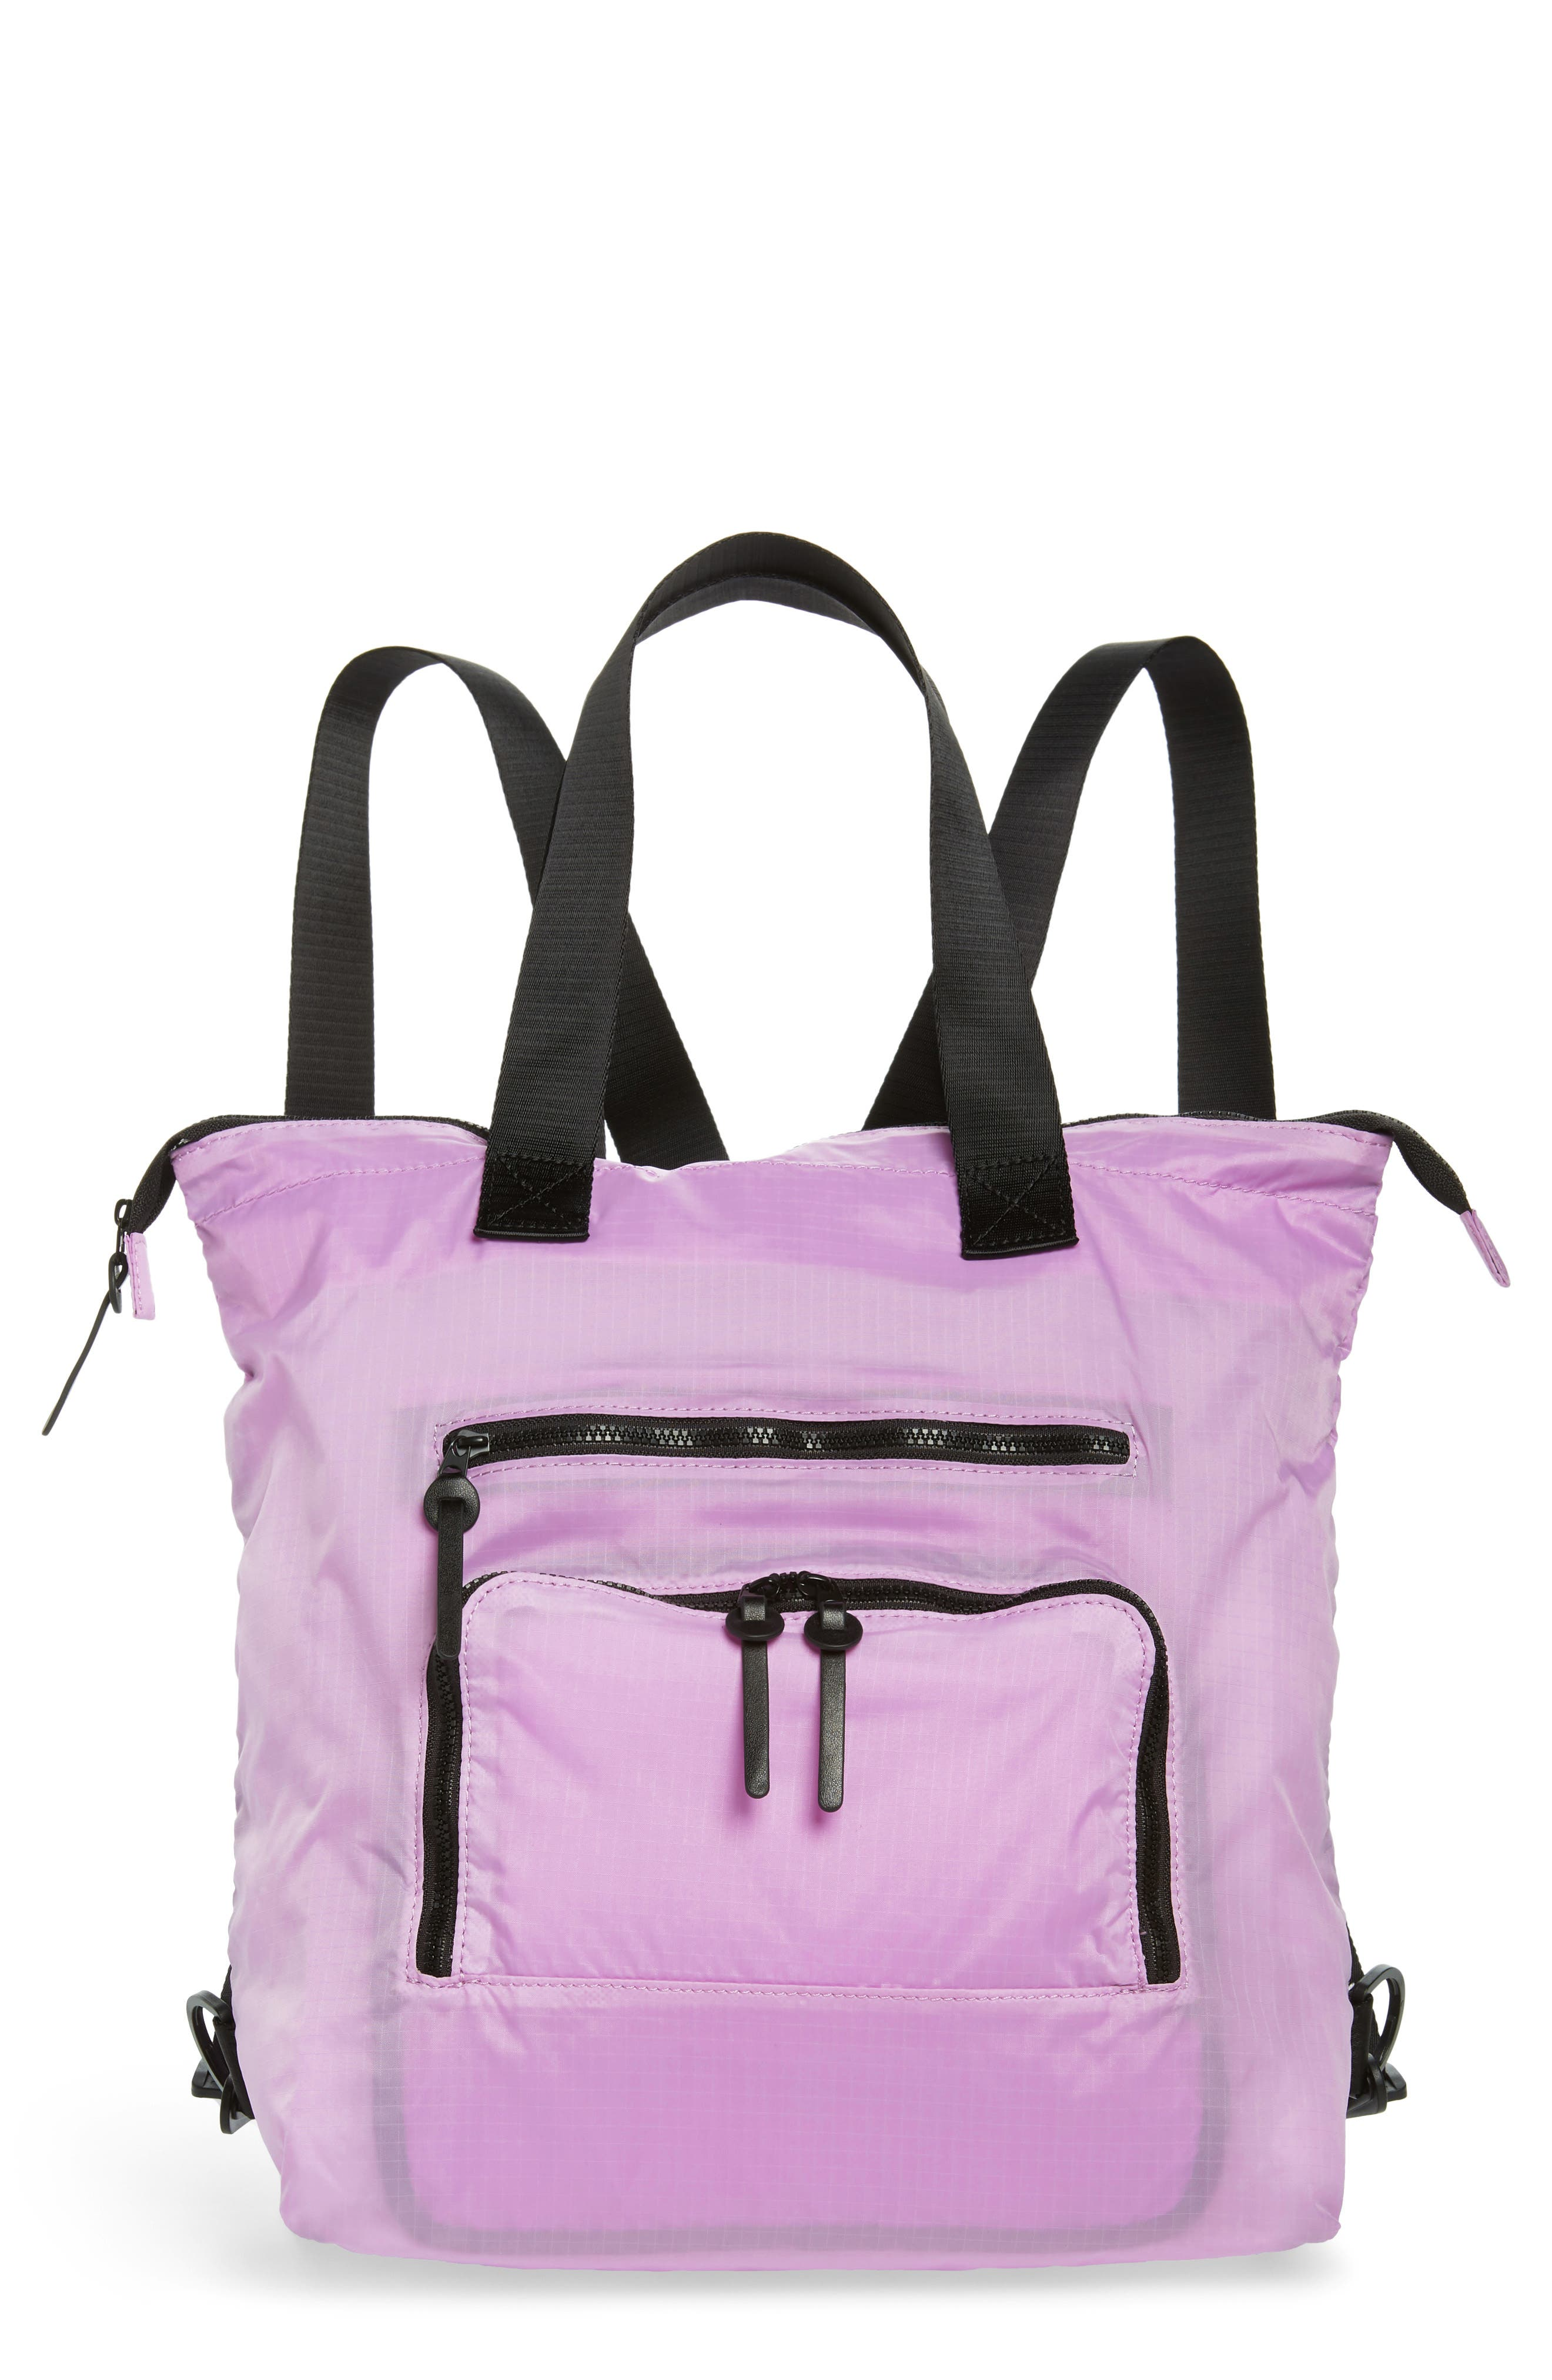 Packable Convertible Backpack,                             Main thumbnail 1, color,                             LAVENDER SWEET